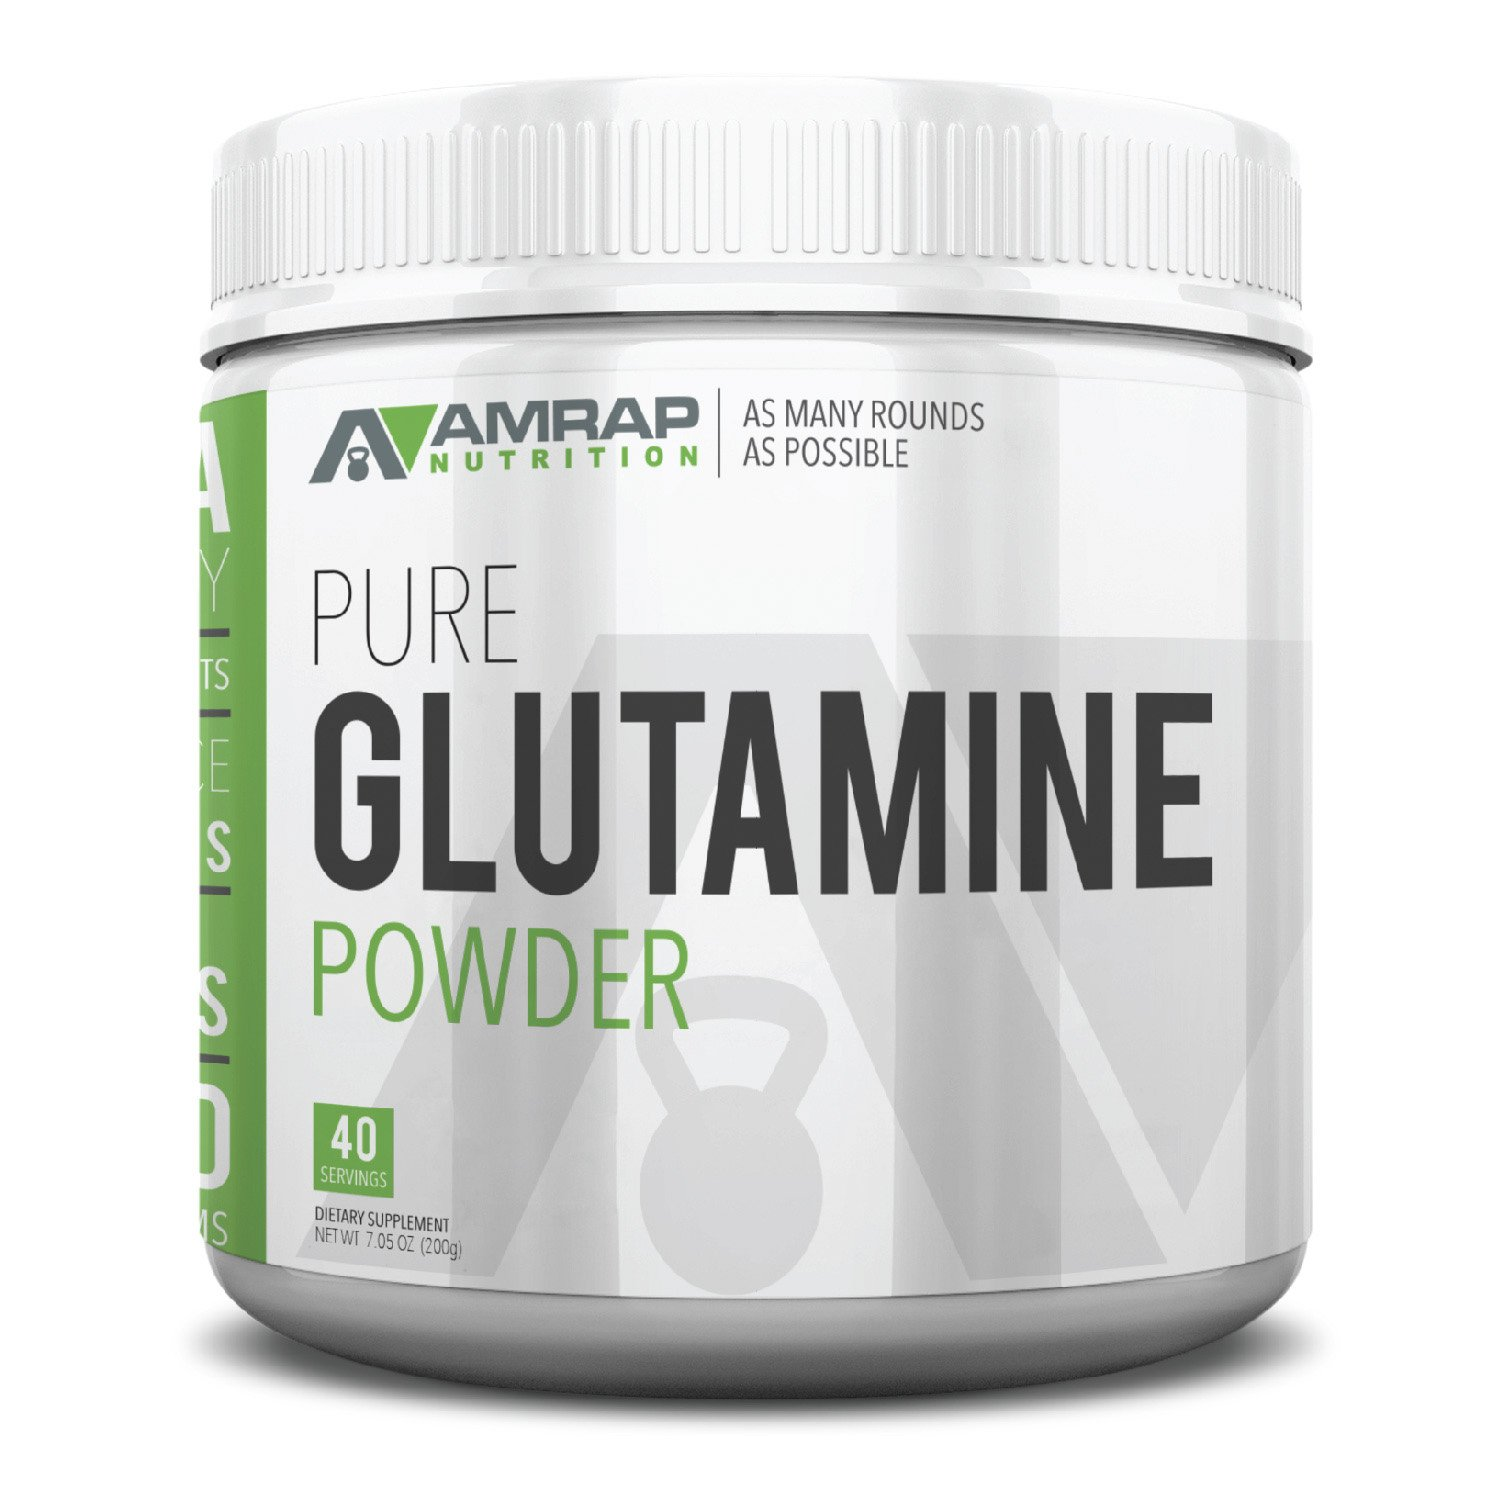 AMRAP Nutrition L-Glutamine Powder - Pure Micronized Free Form Glutamine Recovery Powder - Clinically Proven Recovery Aid for Men and Women - Safe for Regular Consumption - 200 grams by AMRAP Nutrition